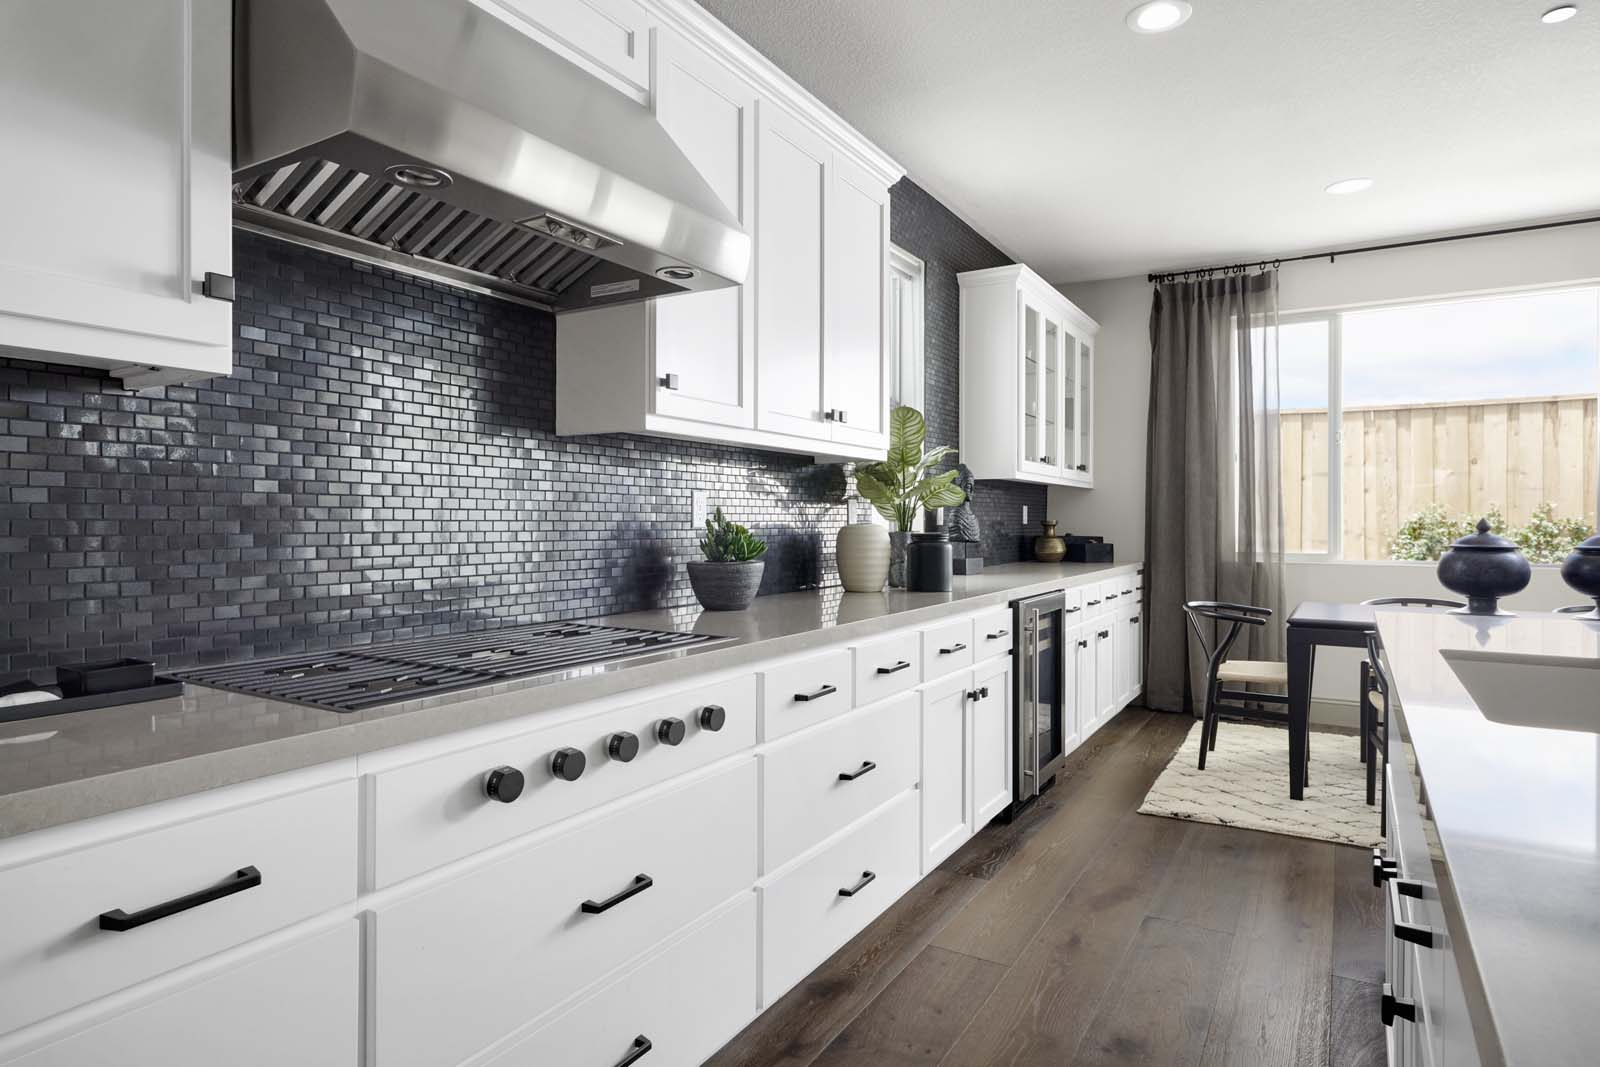 Residence 1 Kitchen | Mulholland at Boulevard in Dublin, CA | Brookfield Residential